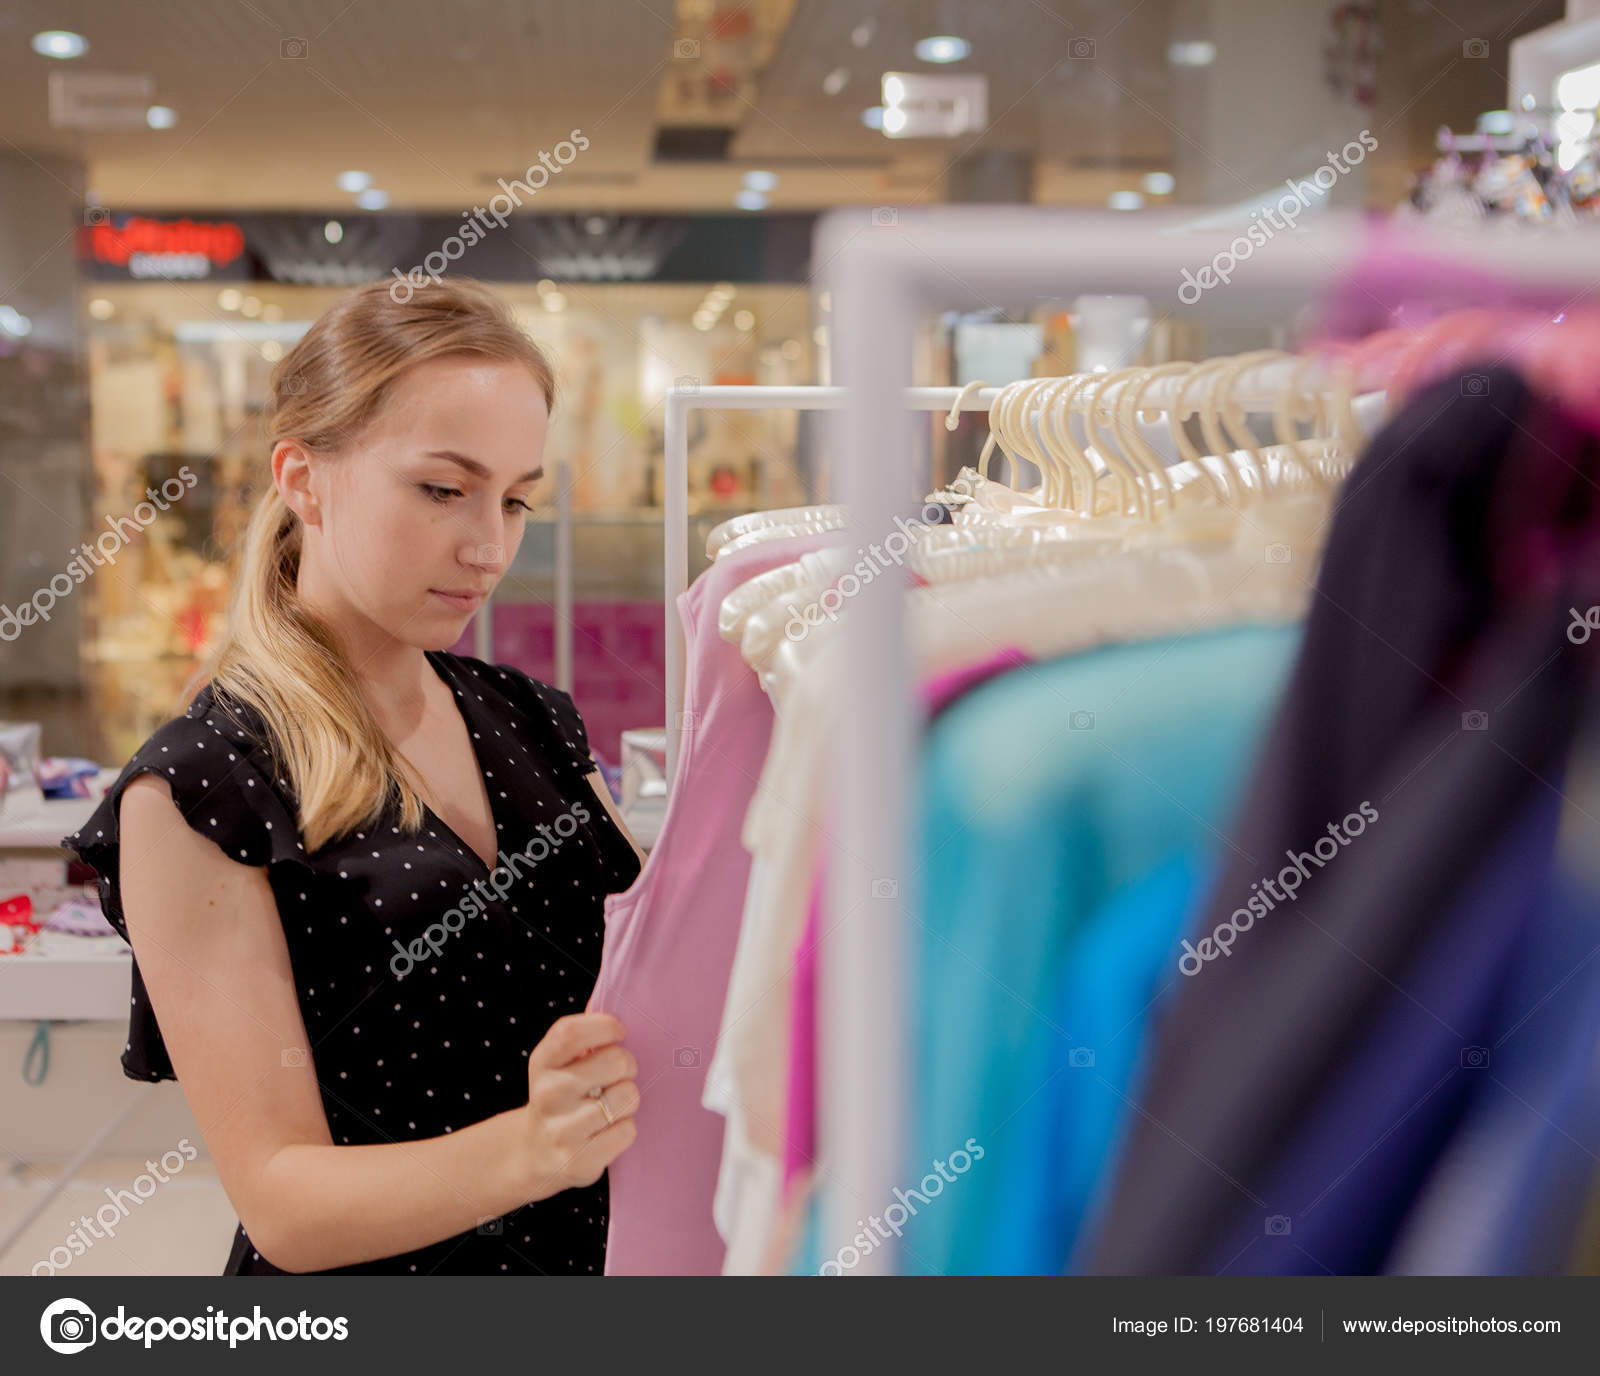 Woman Looks Clothes Advertise Sale Fashion Concept Woman Standing Shop Stock Photo C Volody100 Ukr Net 197681404